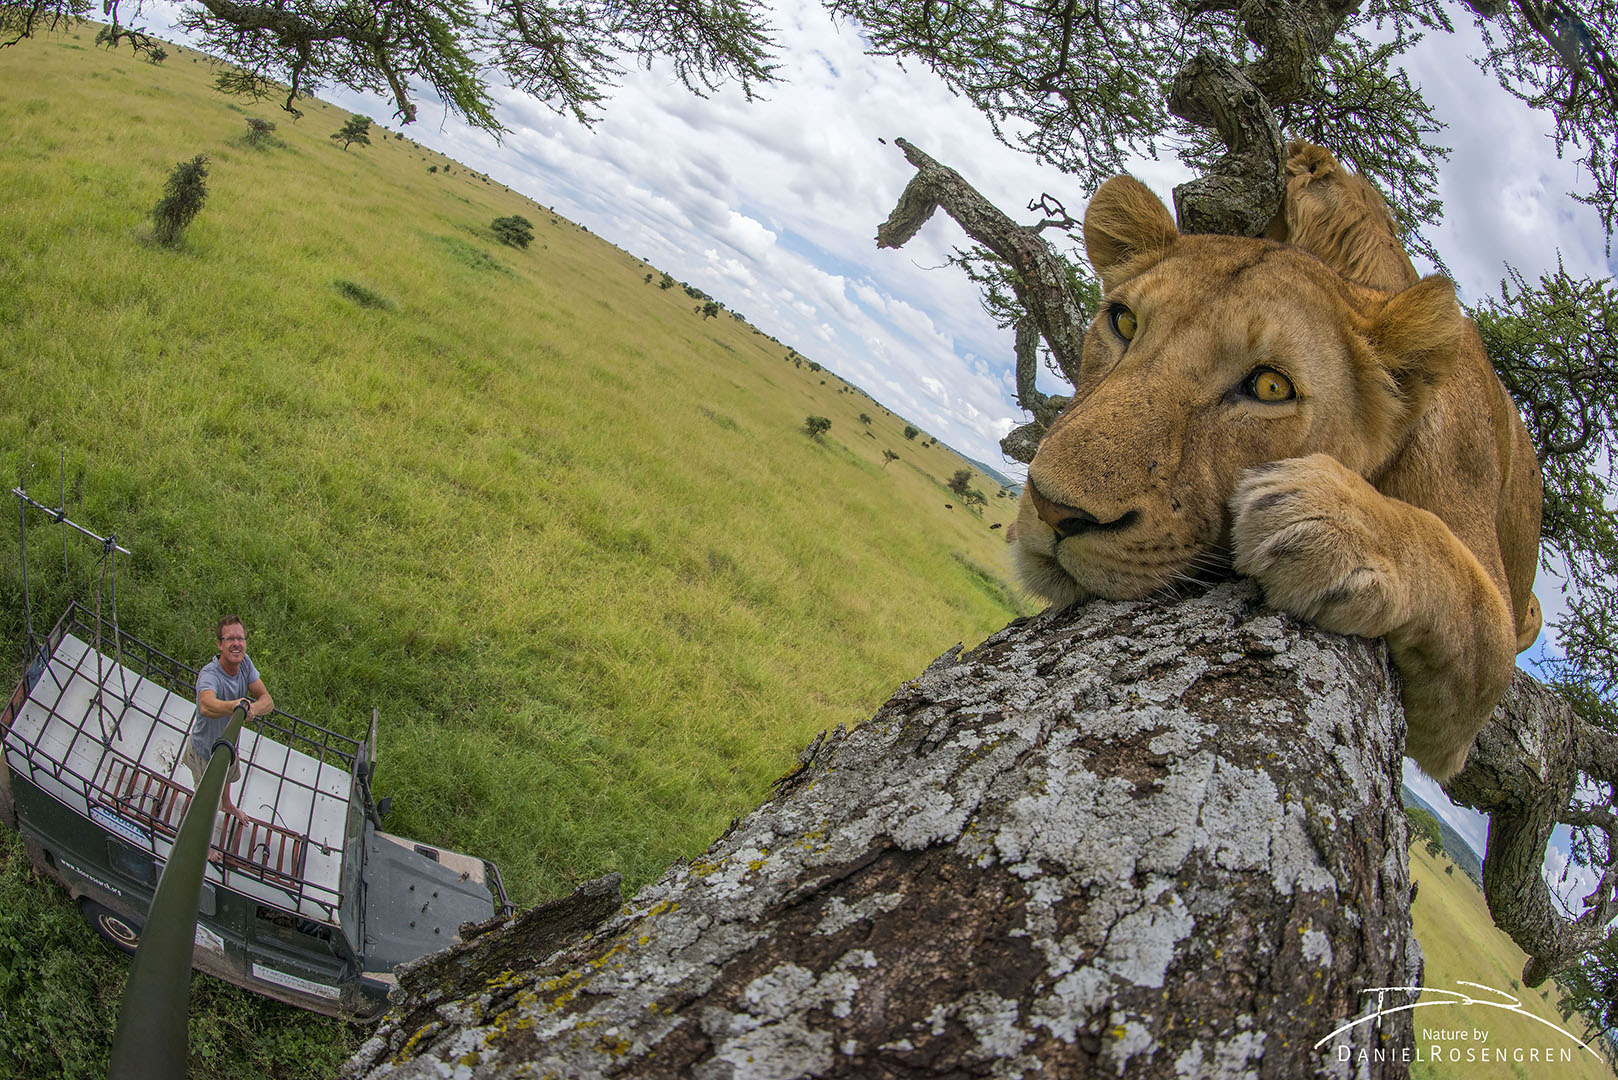 Daniel Rosengren taking a selfie with a pride of lions (Mukoma Gypsies) in a tree. Serengeti NP, Tanzania. © Daniel Rosengren